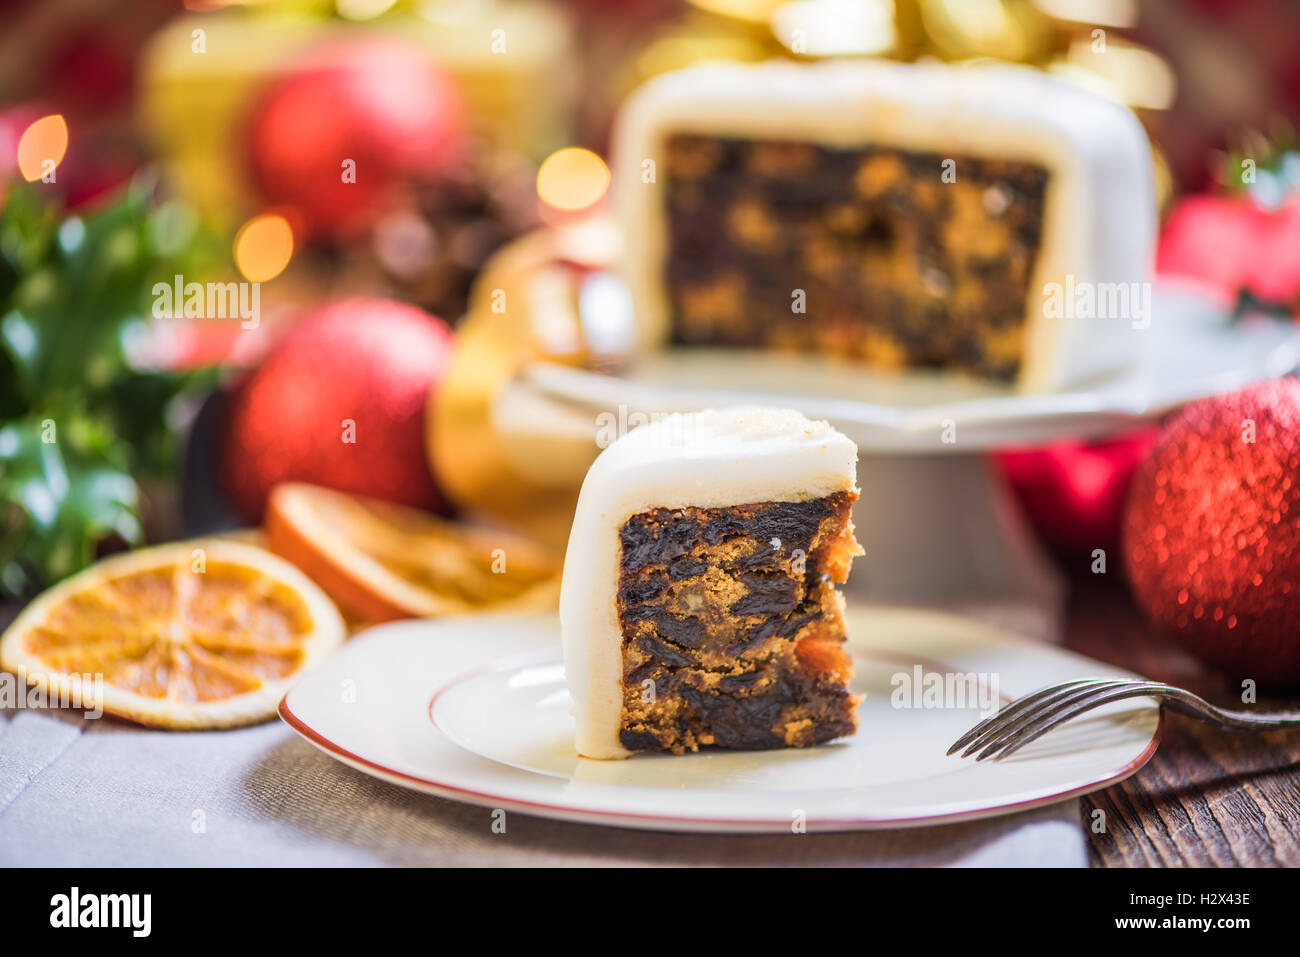 Slicing Christmas traditional festive fruit cake, Christmas ornaments and decorations Stock Photo